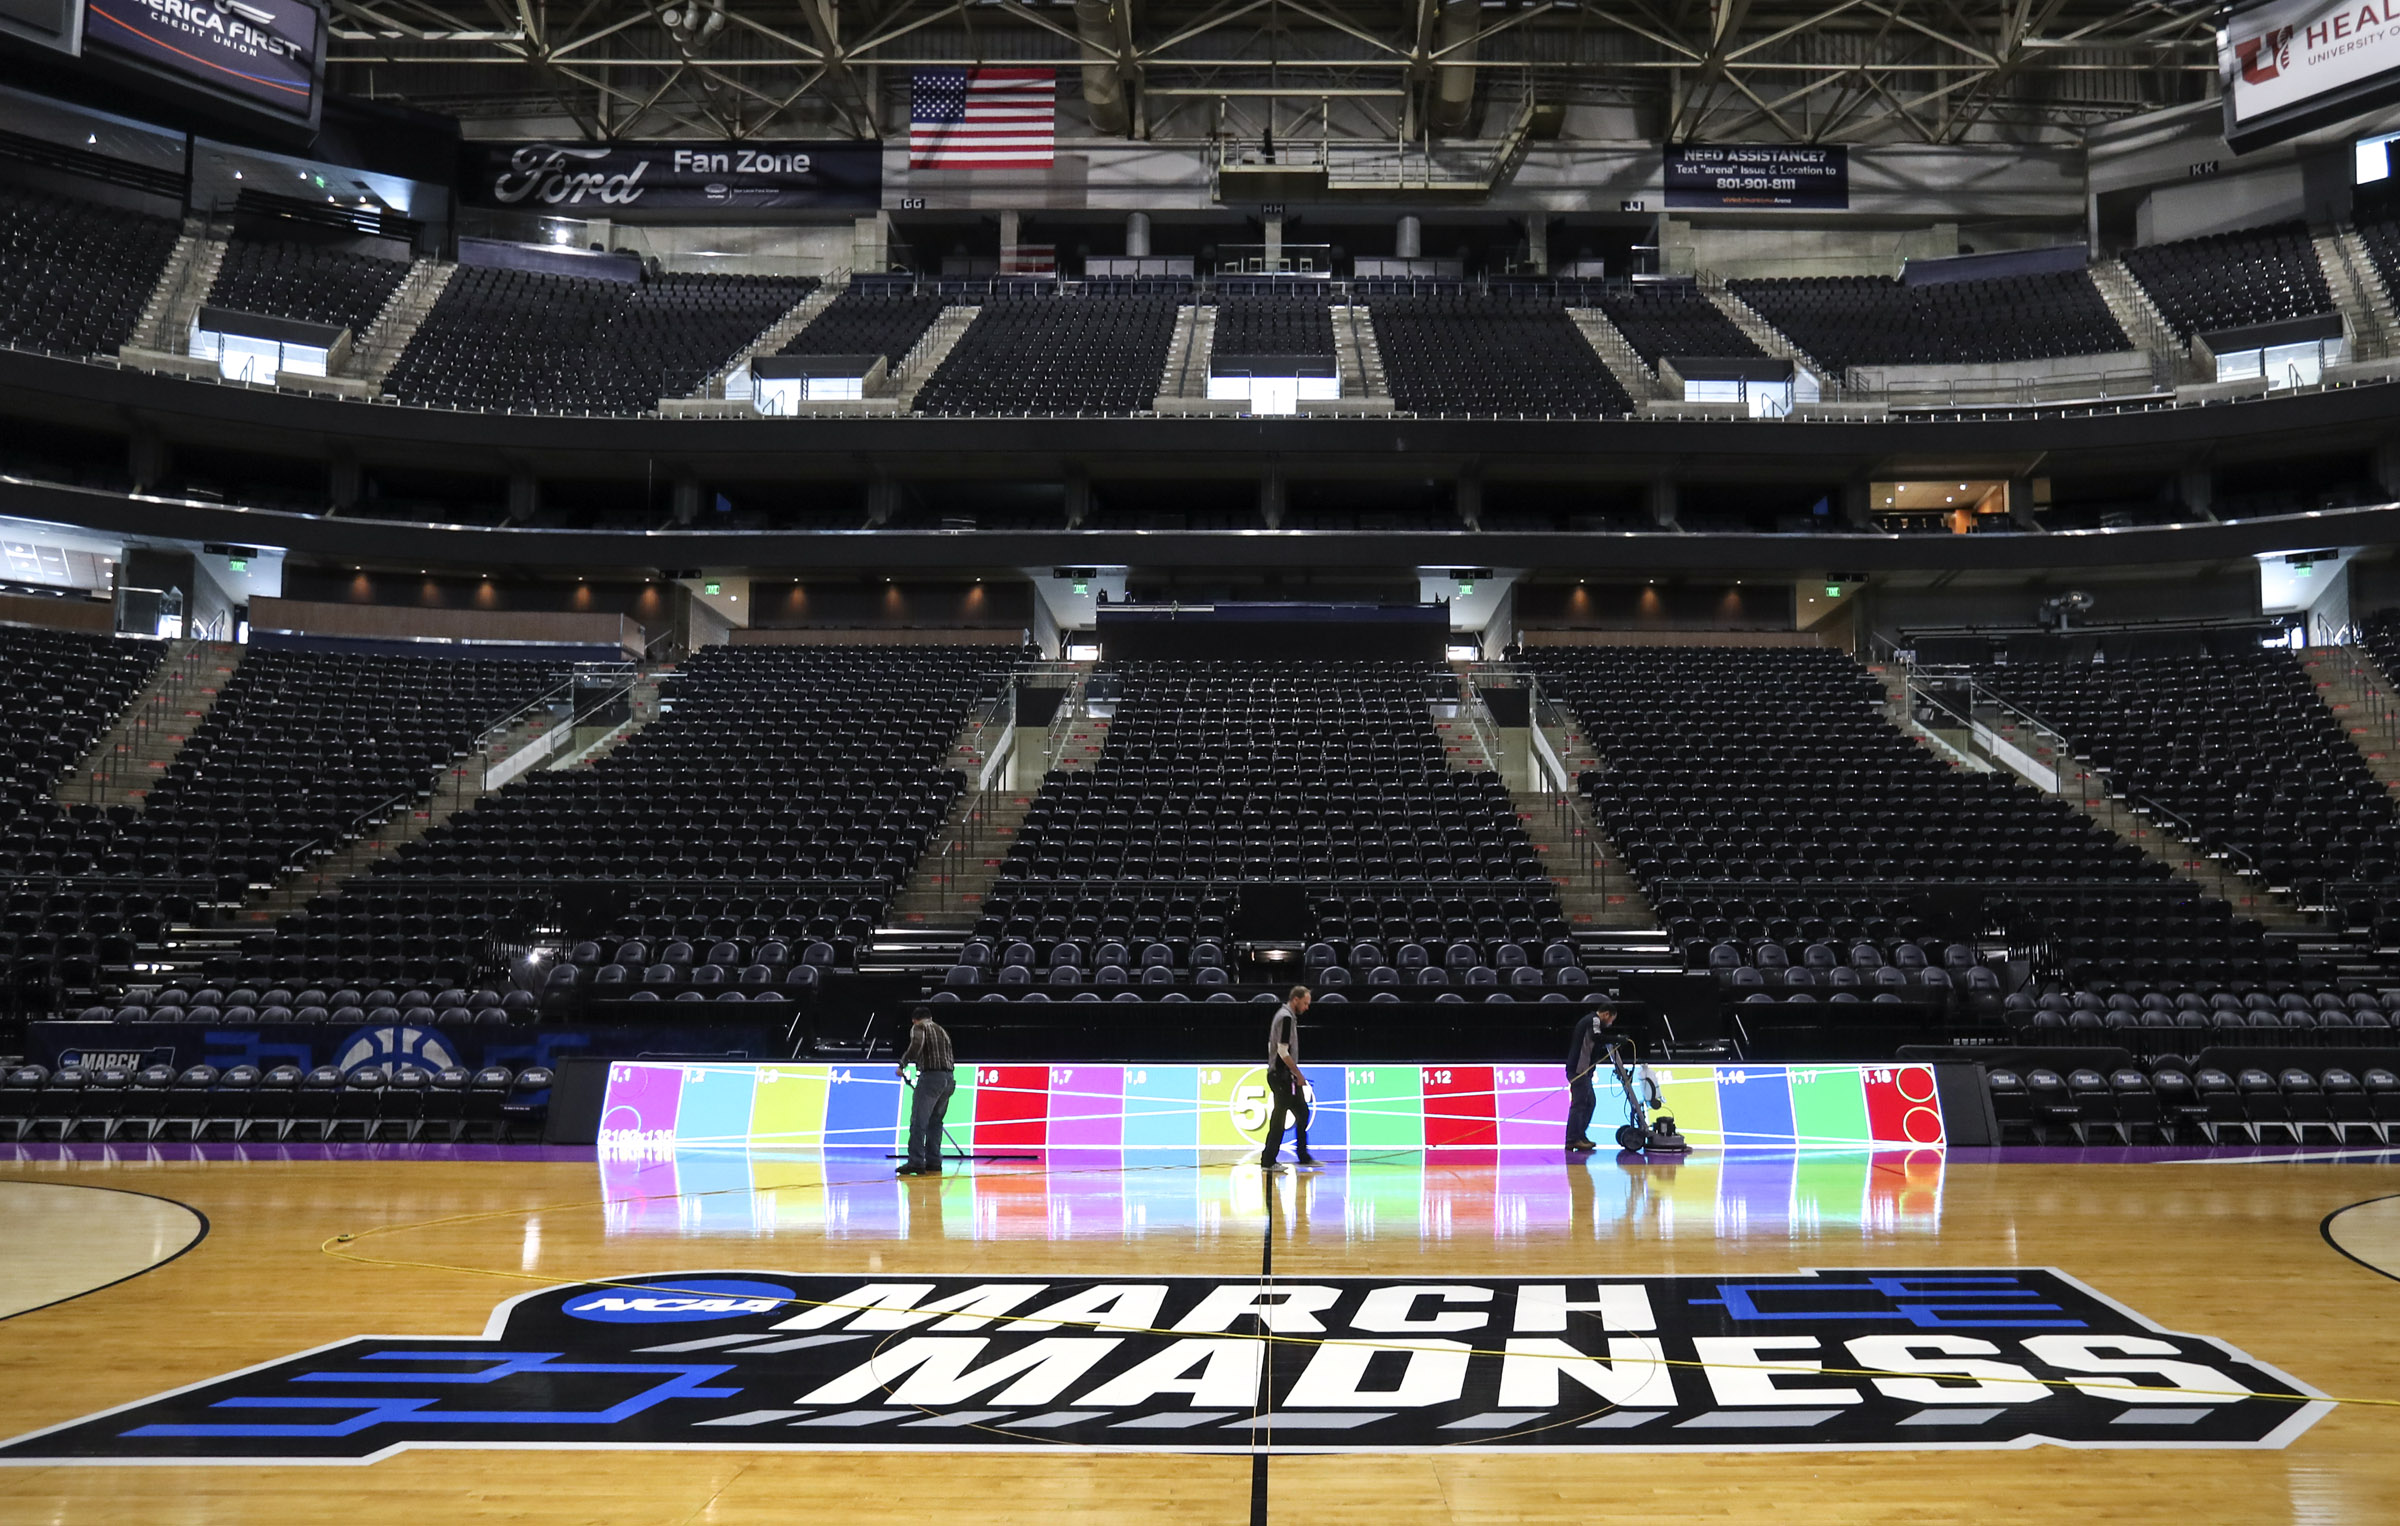 An NCAA March Madness basketball court is installed in Vivint Smart Home Arena in Salt Lake City on Monday, March 18, 2019. The Arena will host the first round of the tournament this weekend.